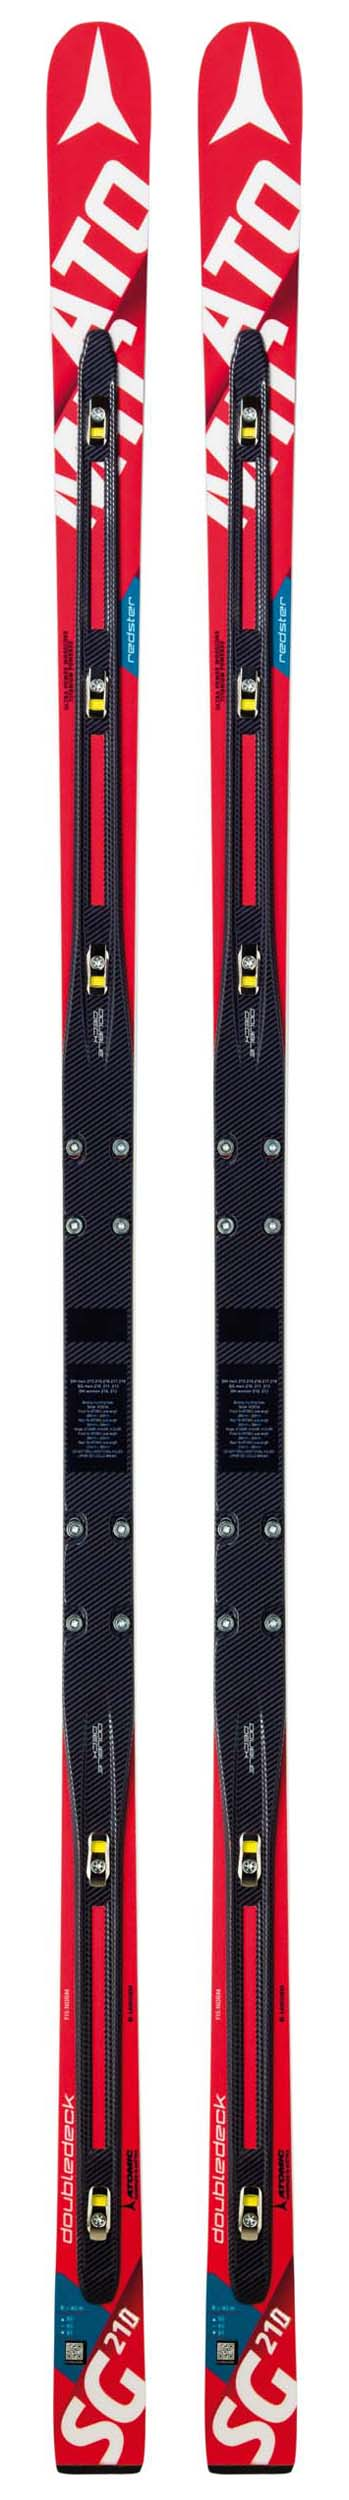 Atomic 2017 Redster D2 2.0 FIS SG W (40M) Race Skis w/Binding Options NEW !! 210cm